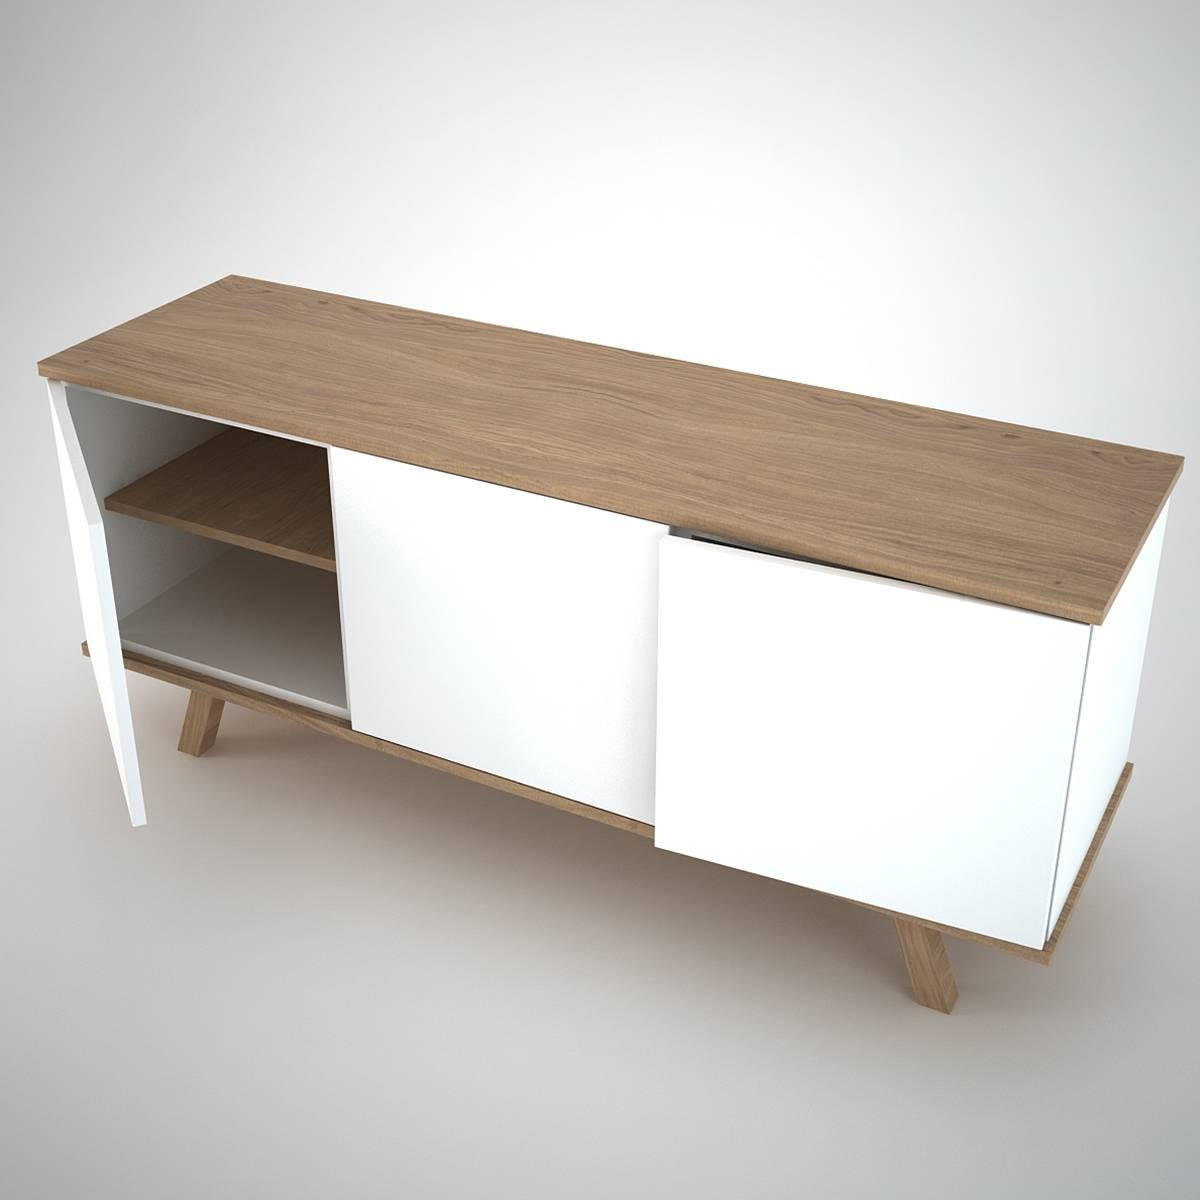 Ottawa Sideboard (3) White - Join Furniture within Contemporary Oak Sideboards (Image 24 of 30)